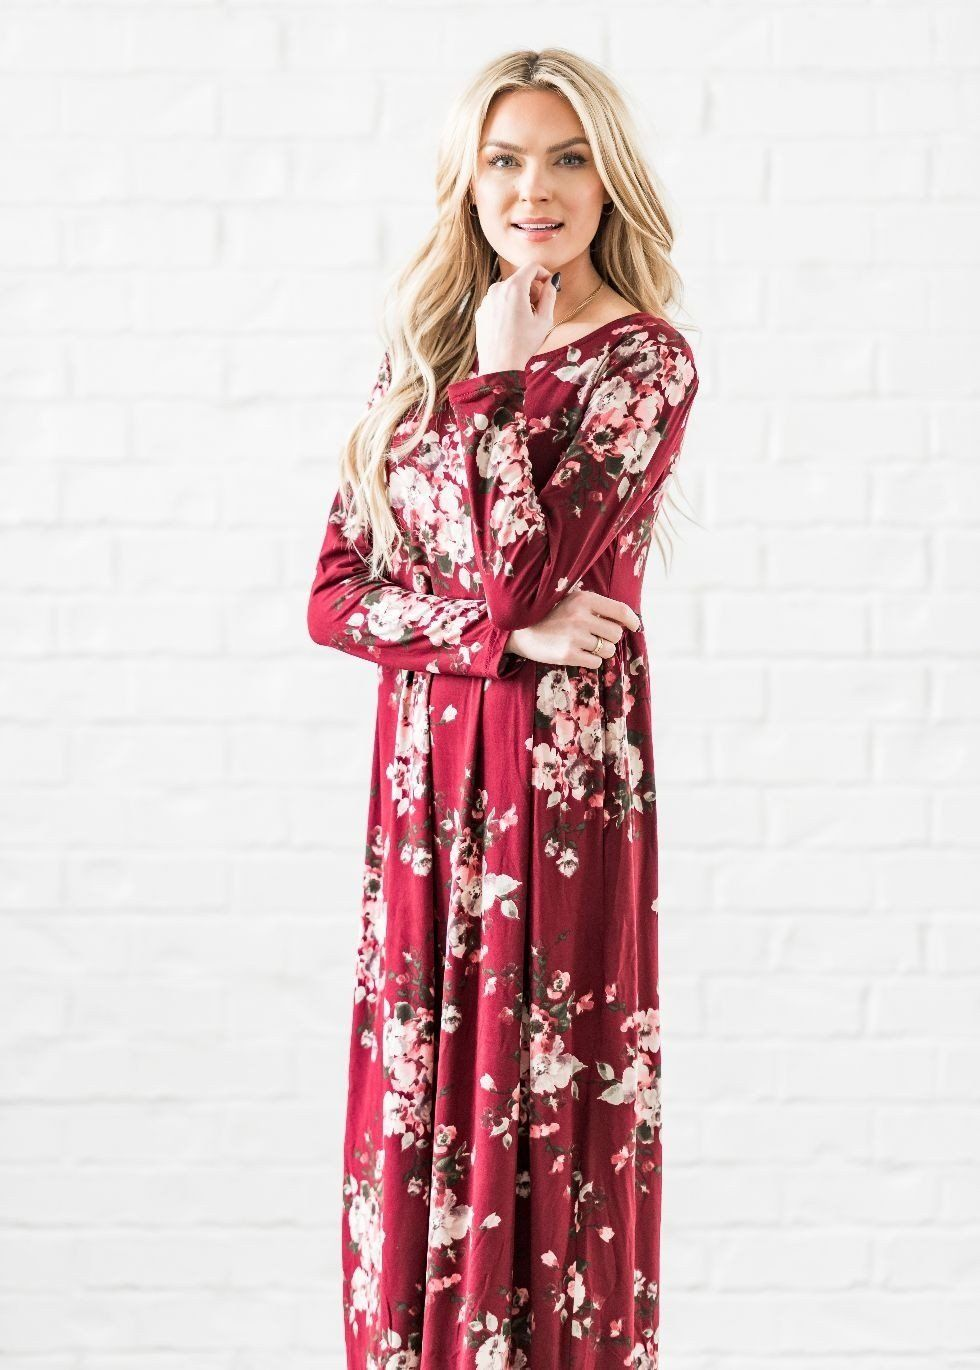 535c1a3477 AnnaBelle Loose Fit Floral Maxi Dress   ModLi   Halal Clothing in ...